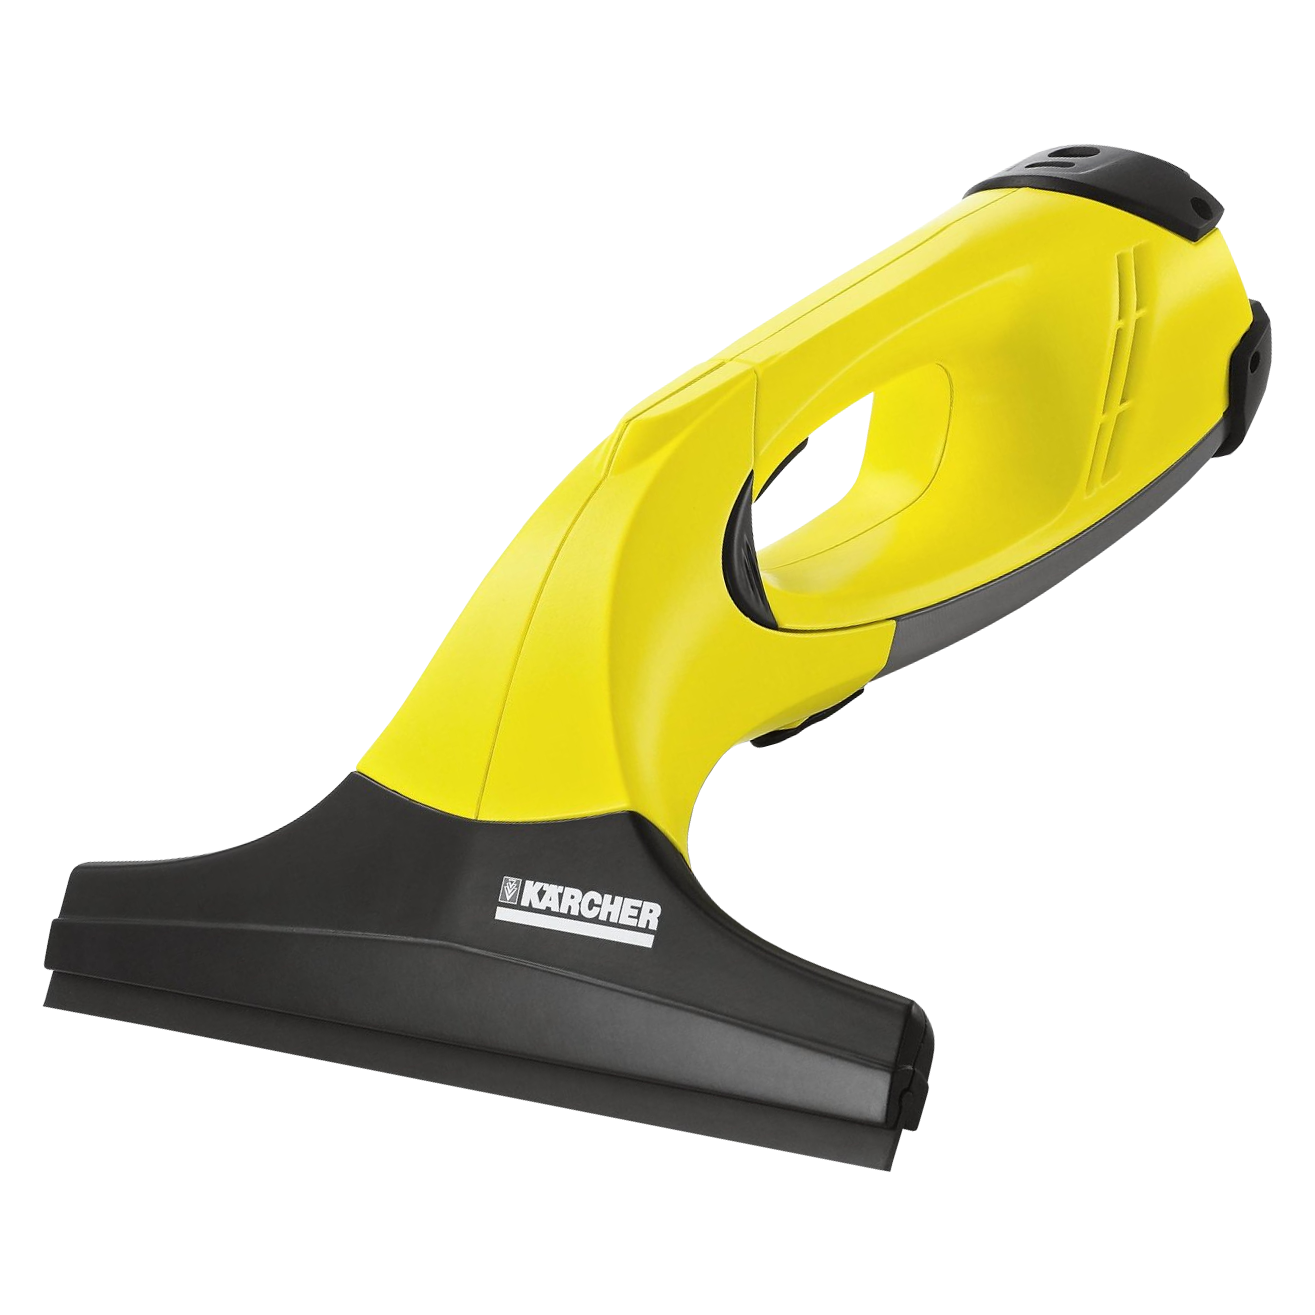 Why Should I Buy The Karcher Window Vac WV50